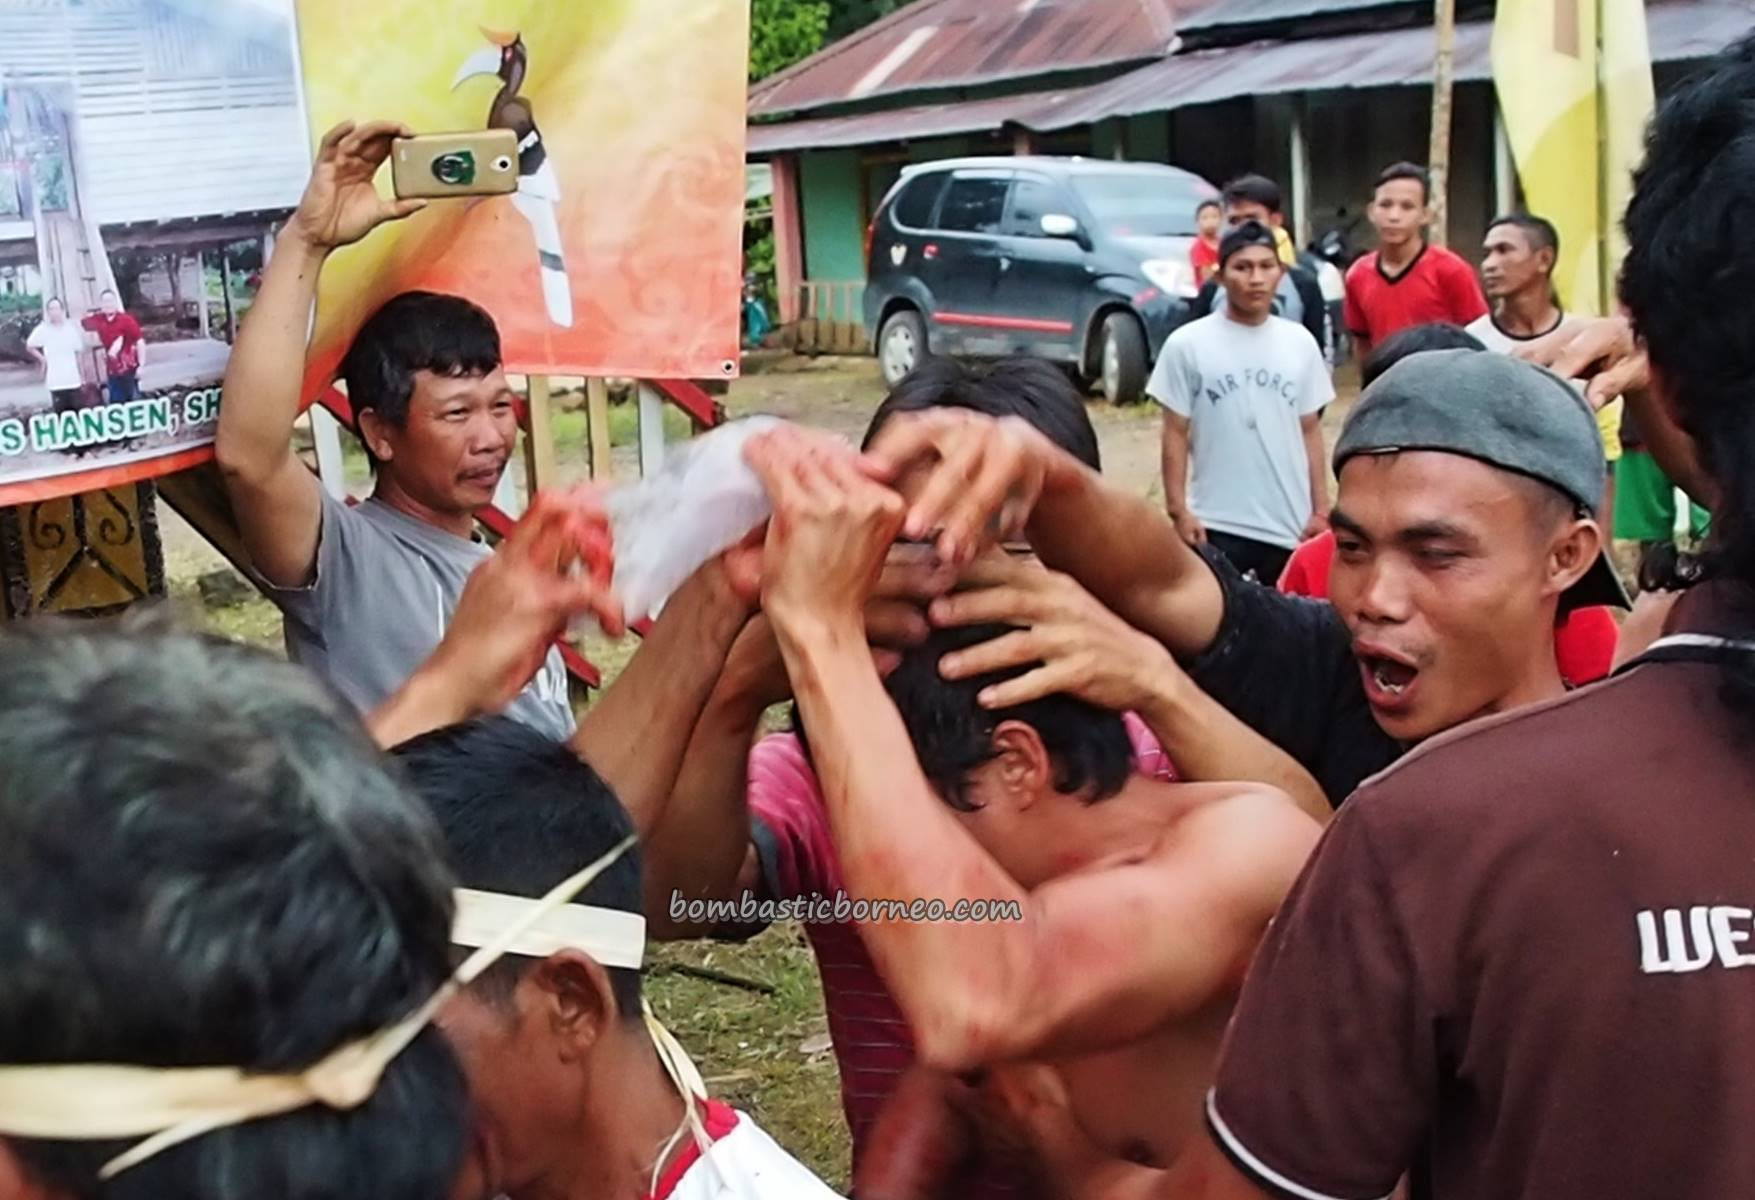 Gawai Nyabakng, culture, event, skull feeding, backpackers, Bengkayang, Indonesia, Dusun Laek, Tujuh Belas, native, tribal, Tourism, tourist attraction, transborder, 印尼西加里曼丹, 土著丰收节日